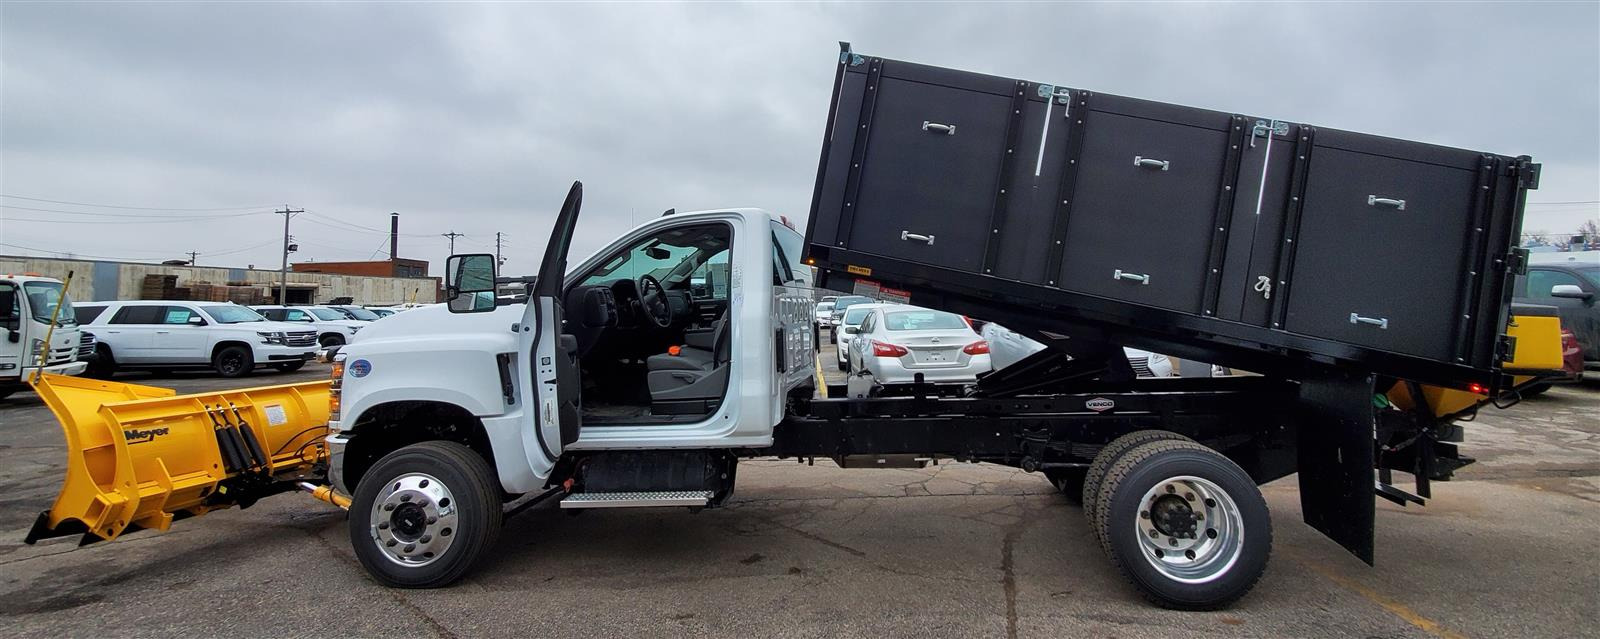 2019 Chevrolet Silverado Medium Duty Regular Cab DRW 4x4, Landscape dump w/ Snow plow and salt spreader #191025 - photo 8